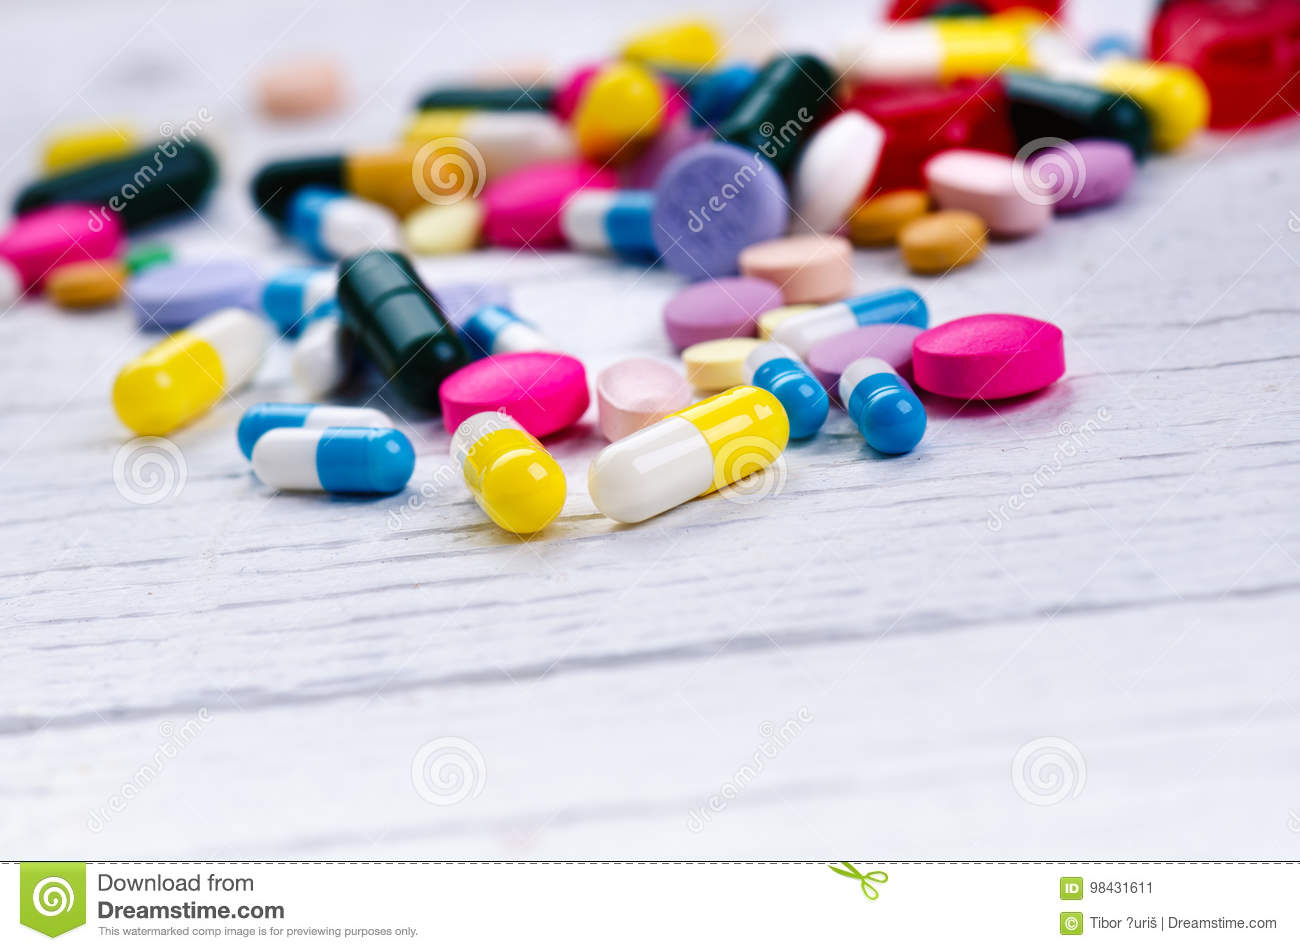 Pharmacy background on a white table. Tablets on a white background. Pills. Medicine and healthy. Close up of capsules. Differend